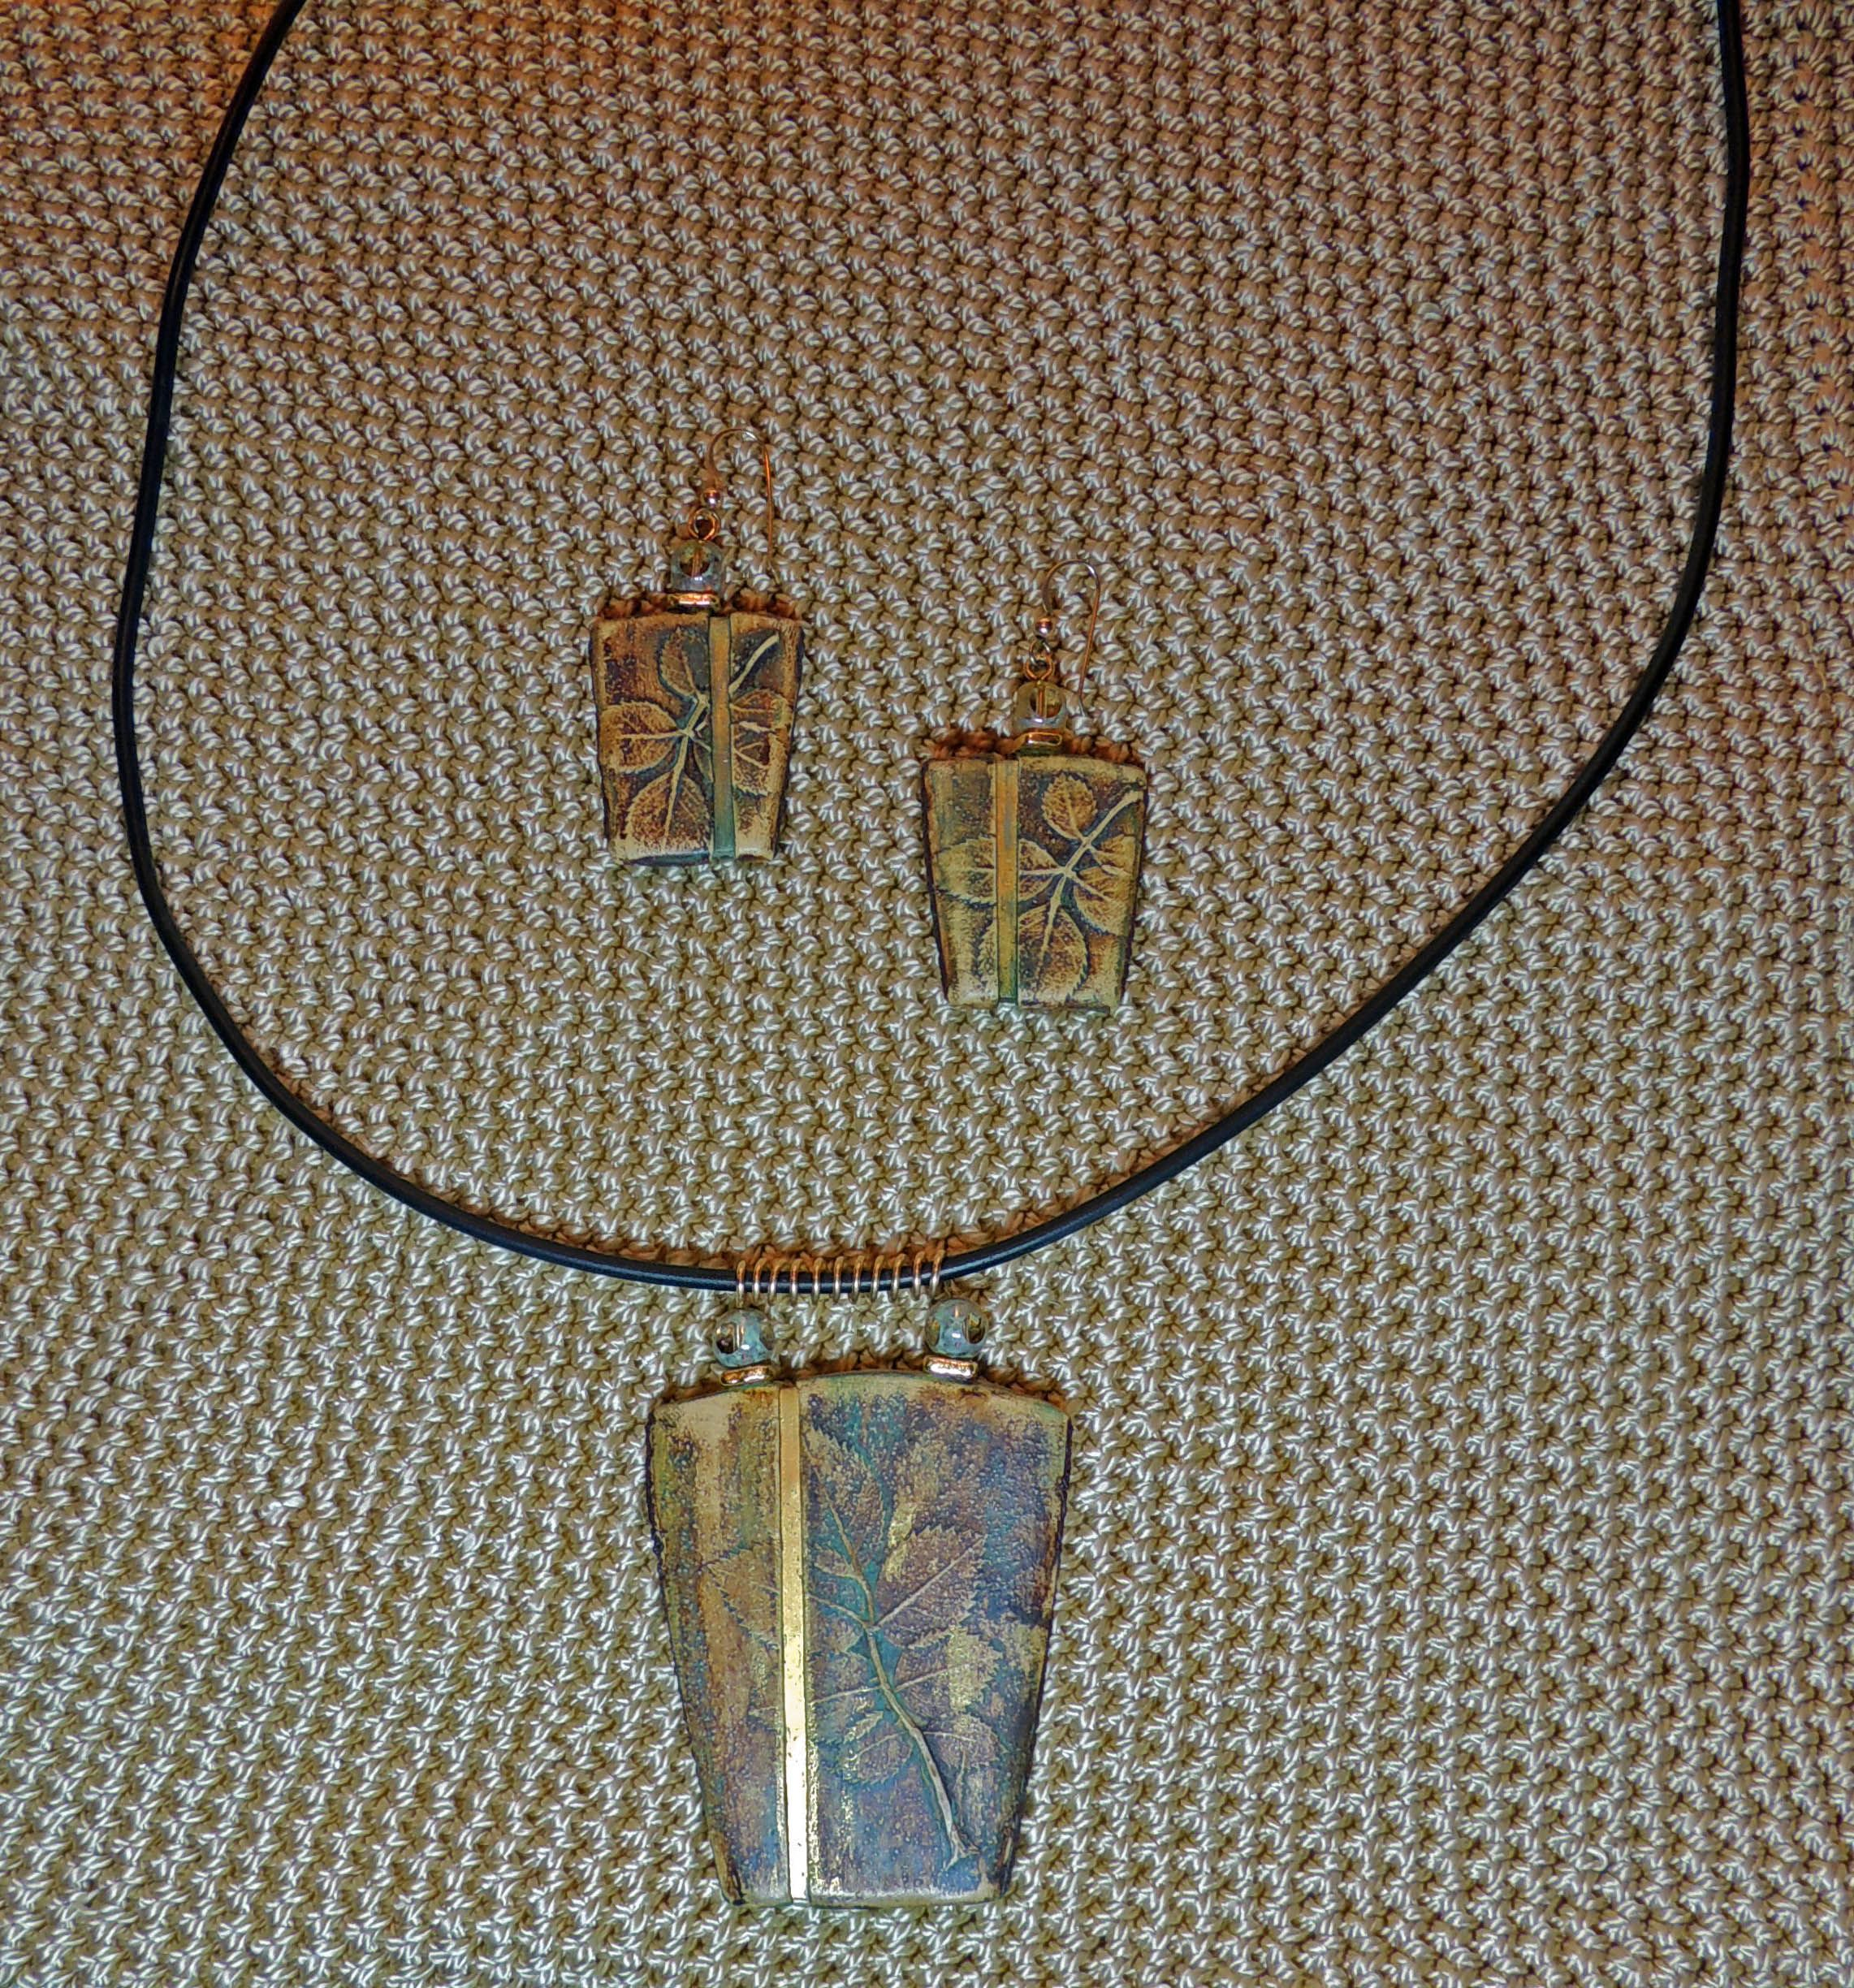 Patricia Kimle Leaf Fossil Pendant and Earring Set -  AVAILABLE. Purchased at a Ravensdale Conference.